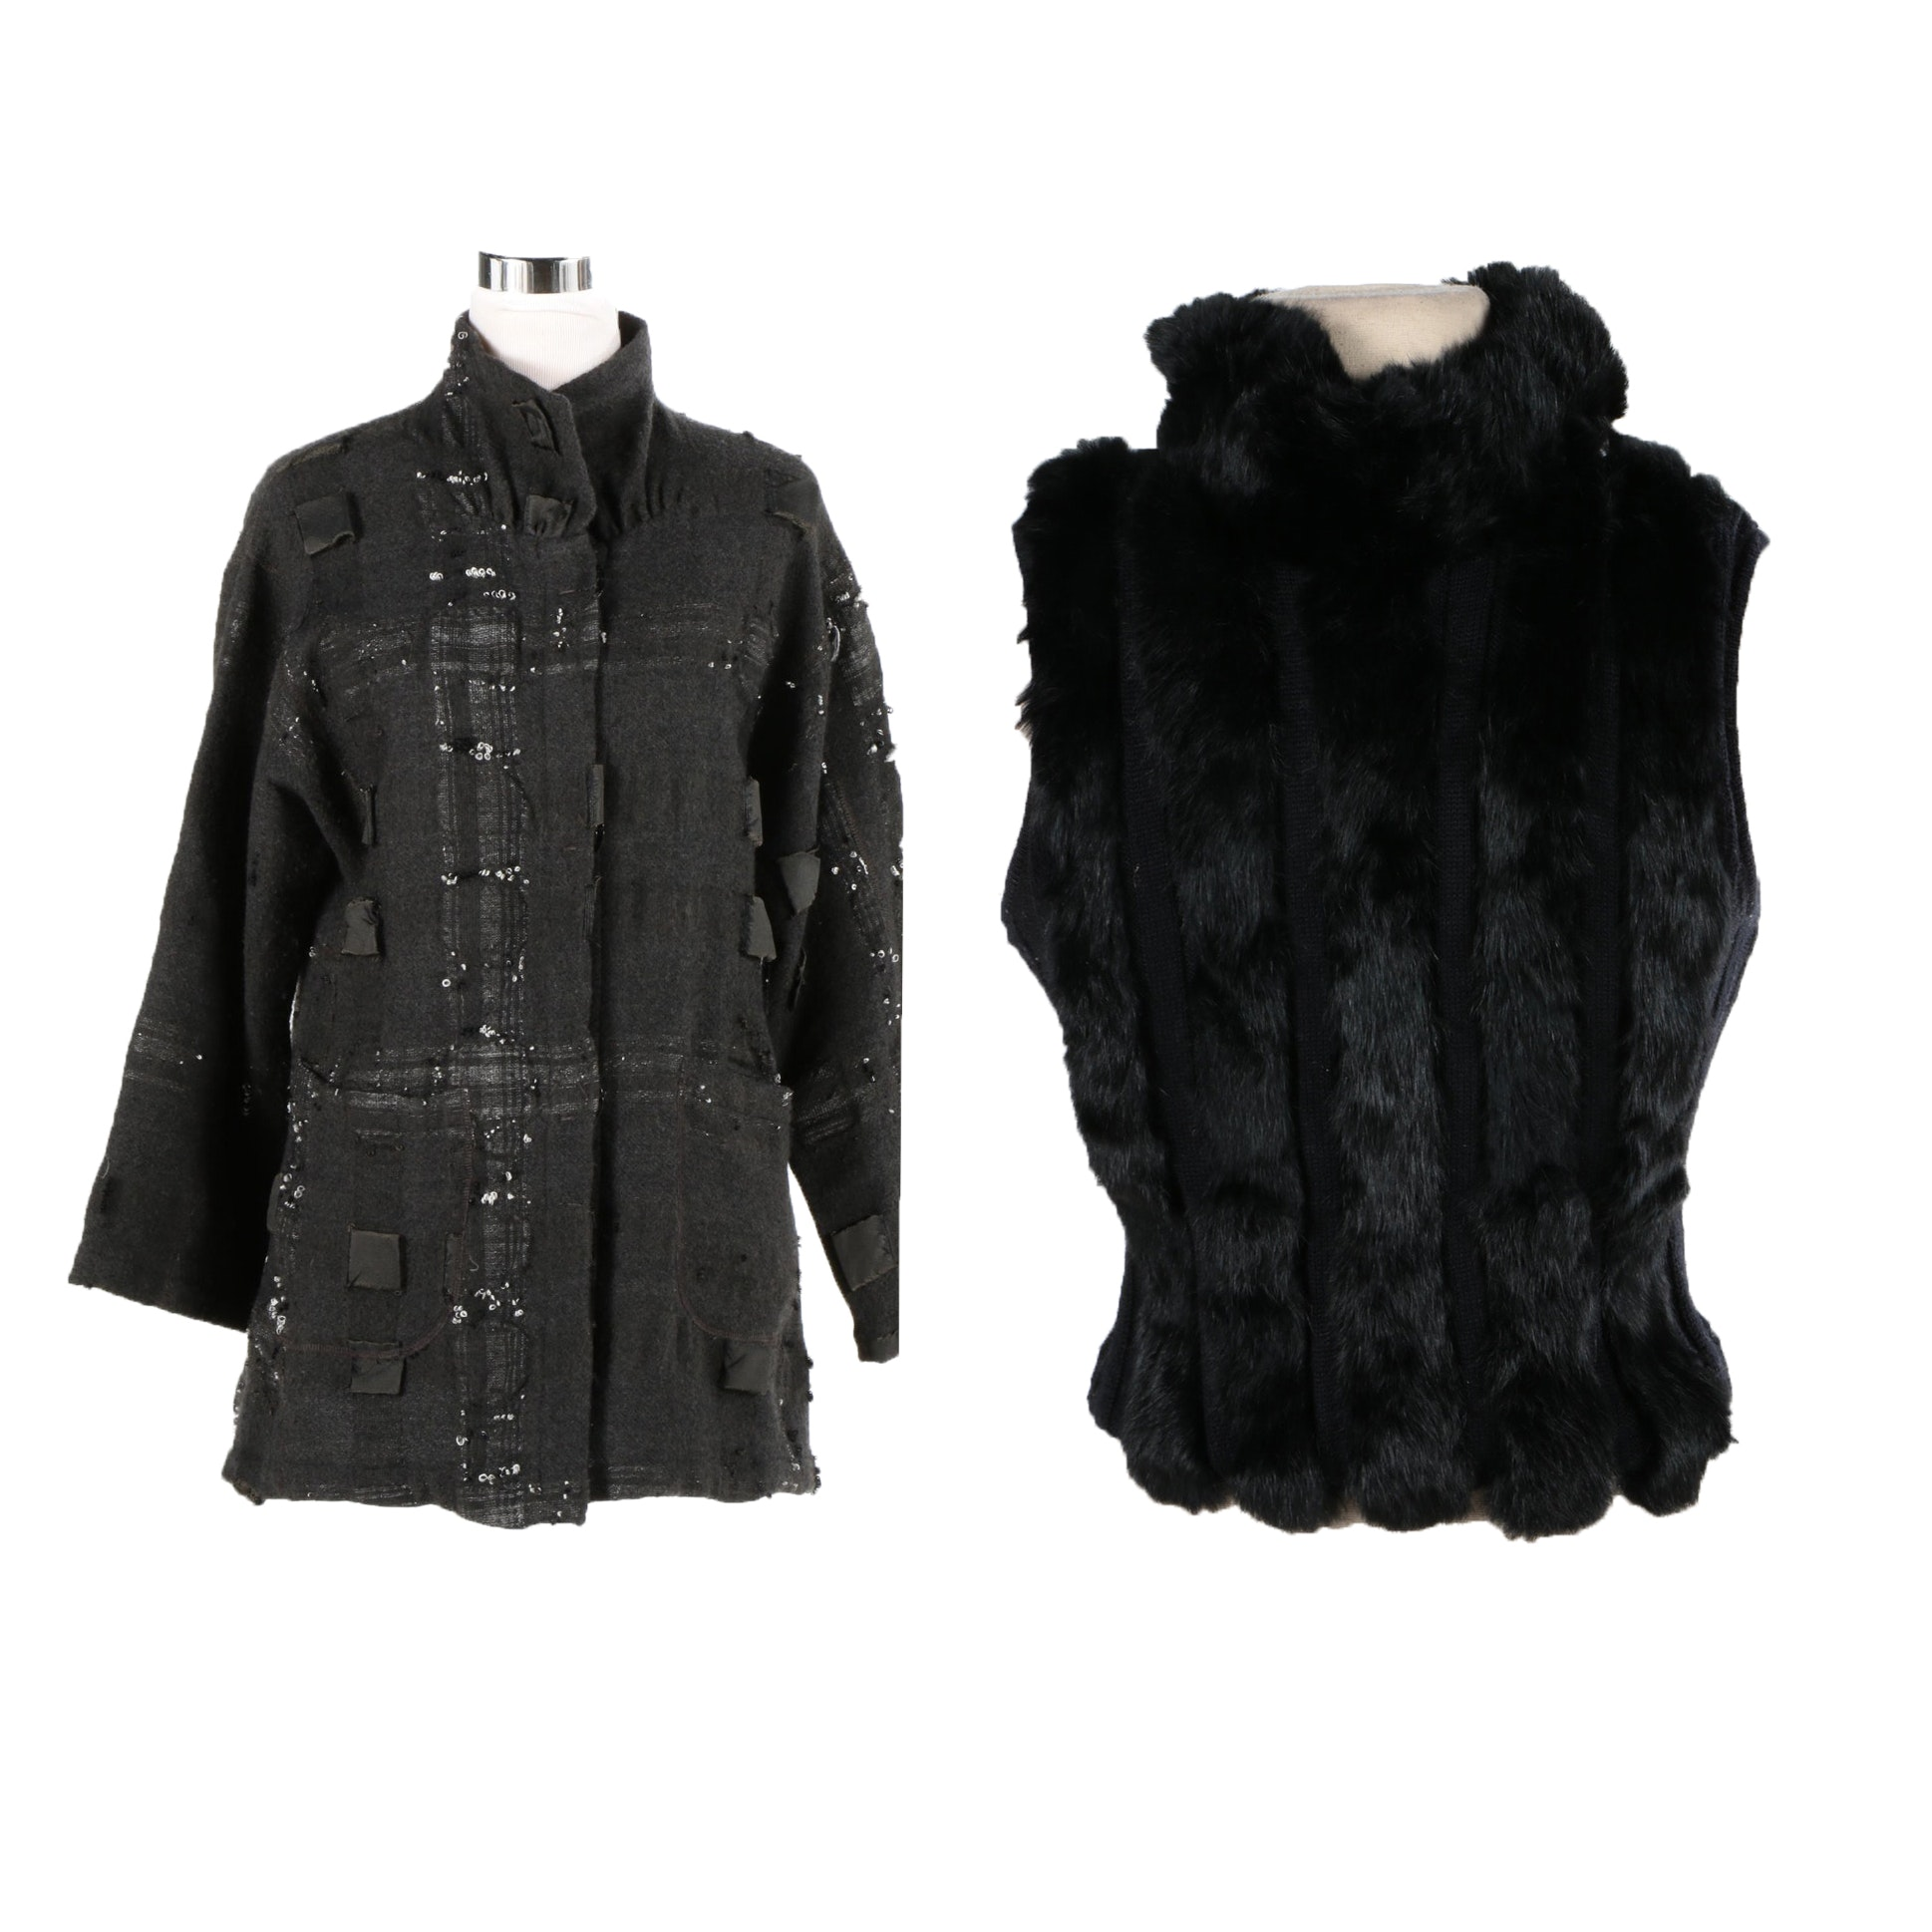 Women's Jacket and Rabbit Fur Accented Seater Vest